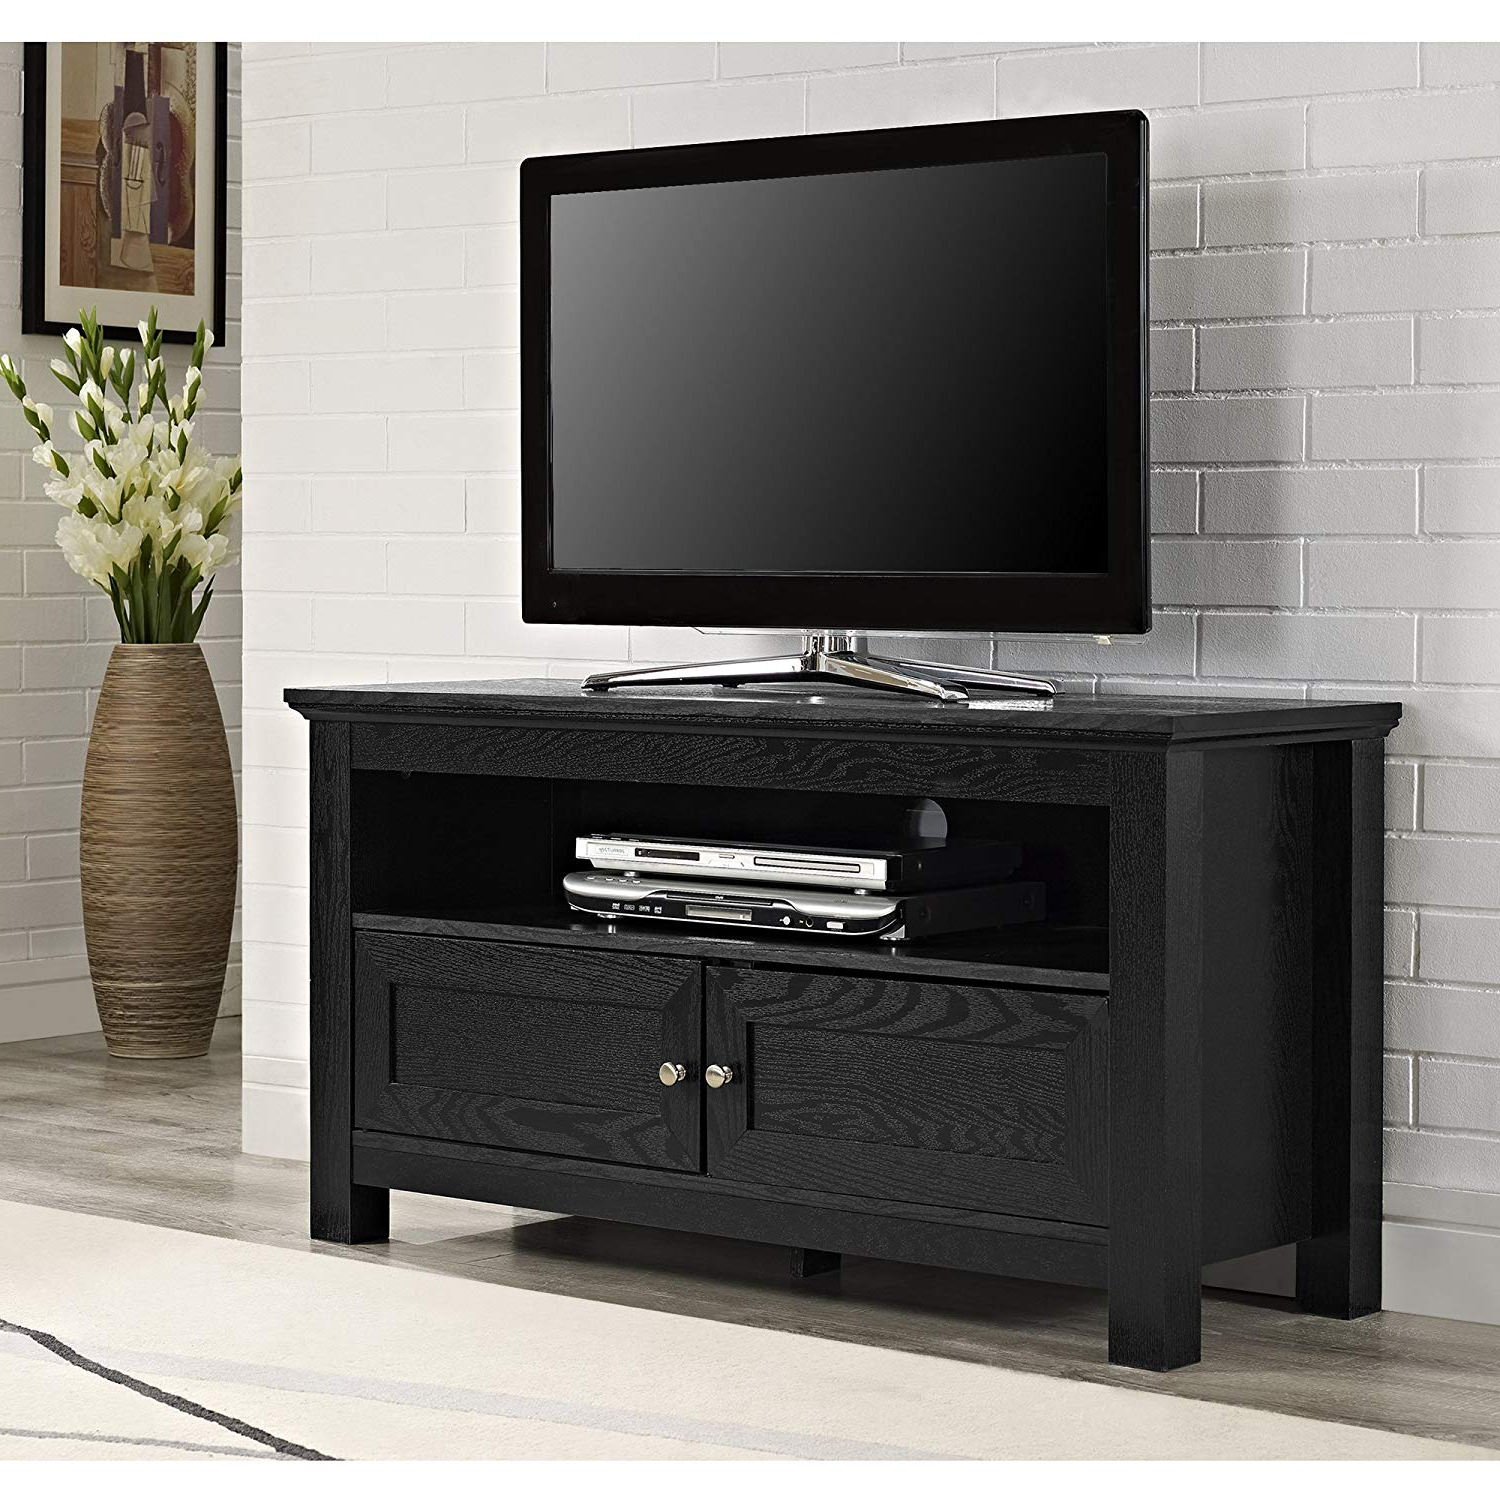 Amazon: Walker Edison 44 Inches Cortez Tv Stand Console, Black With Regard To Well Known Dark Wood Tv Stands (Gallery 2 of 20)